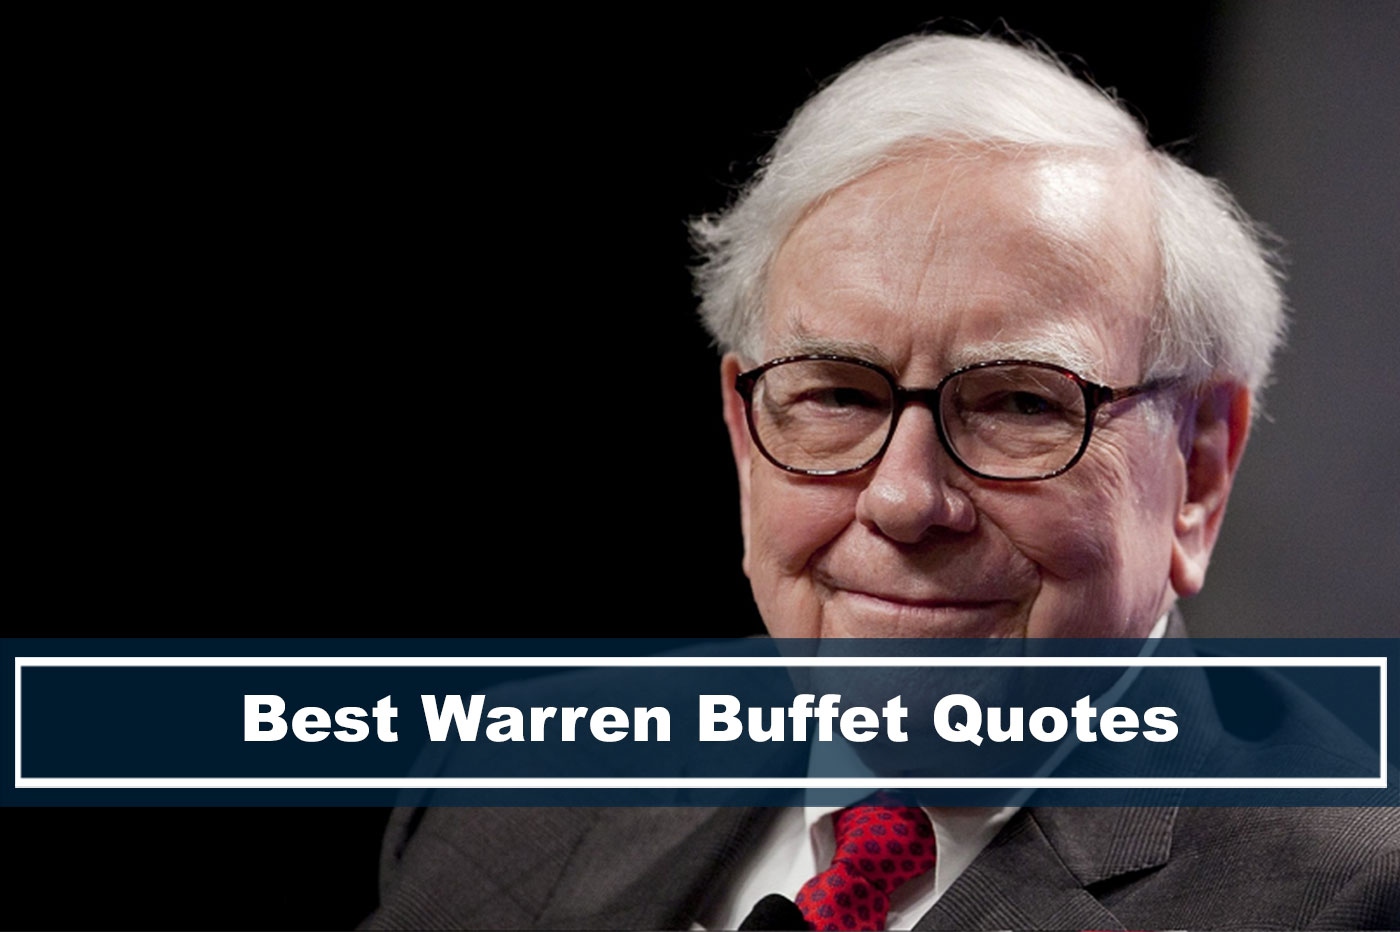 Warren Buffet best quotes on investing and money